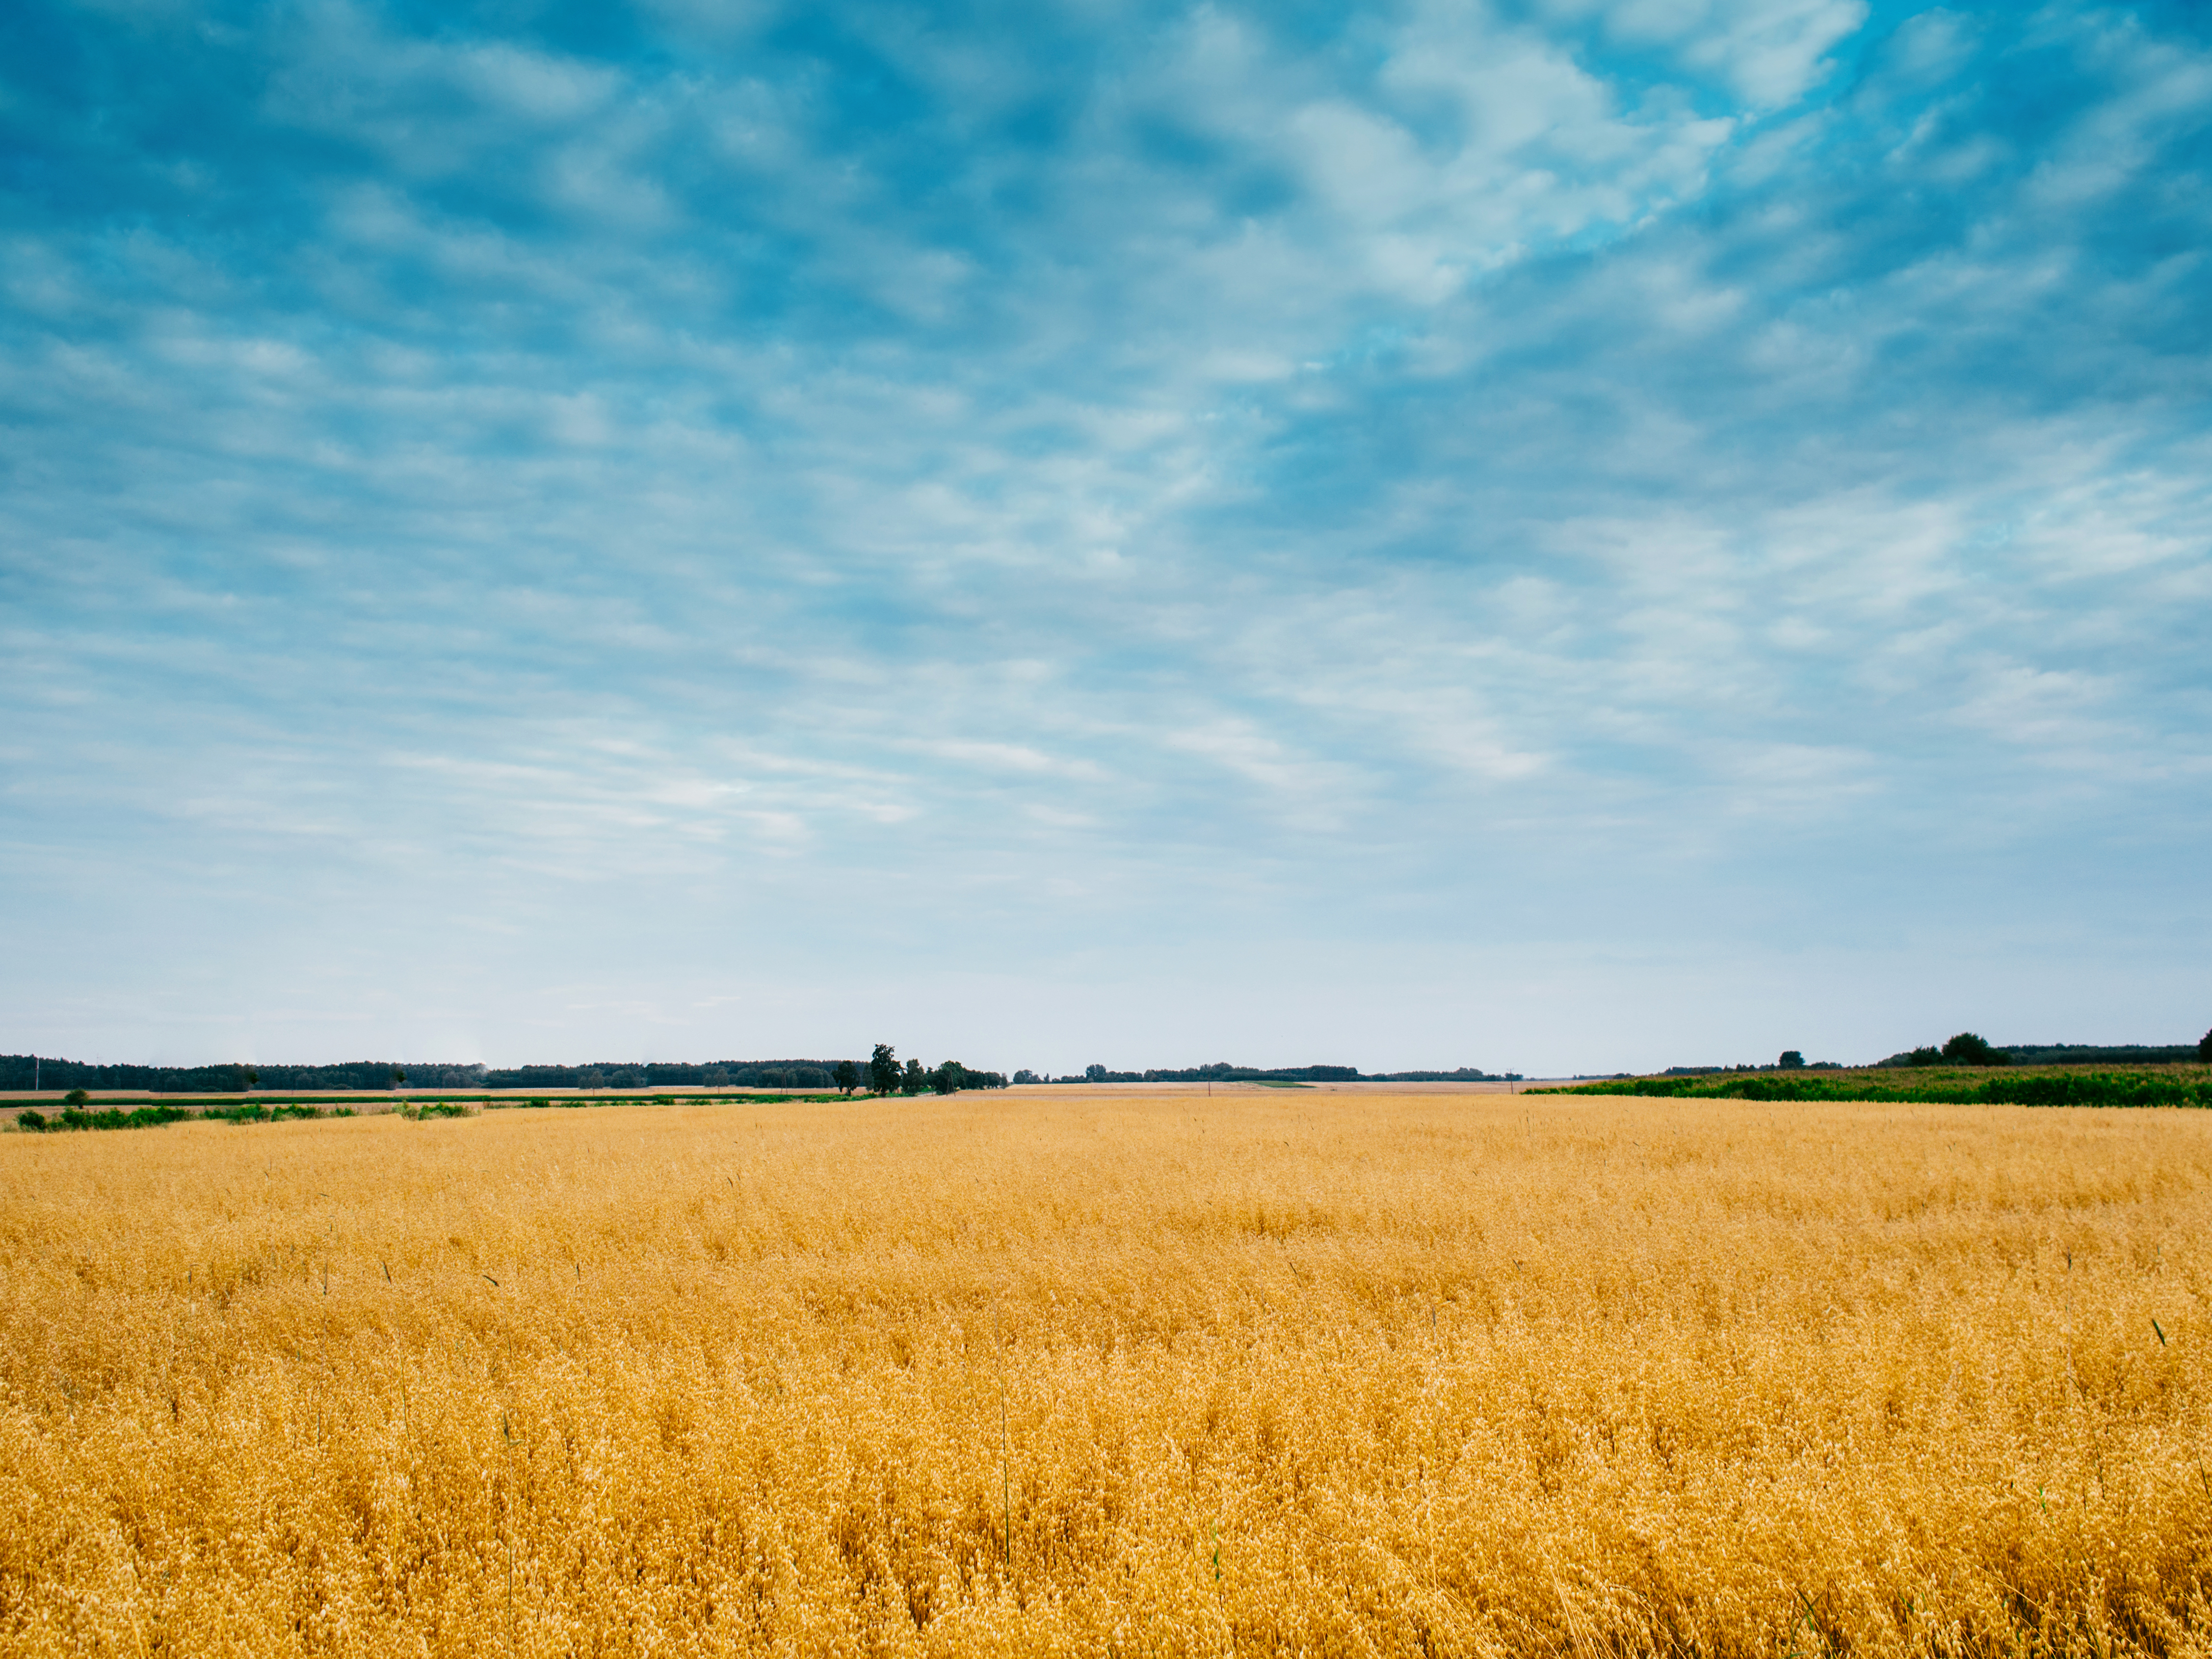 field pictures pexels free stock photos